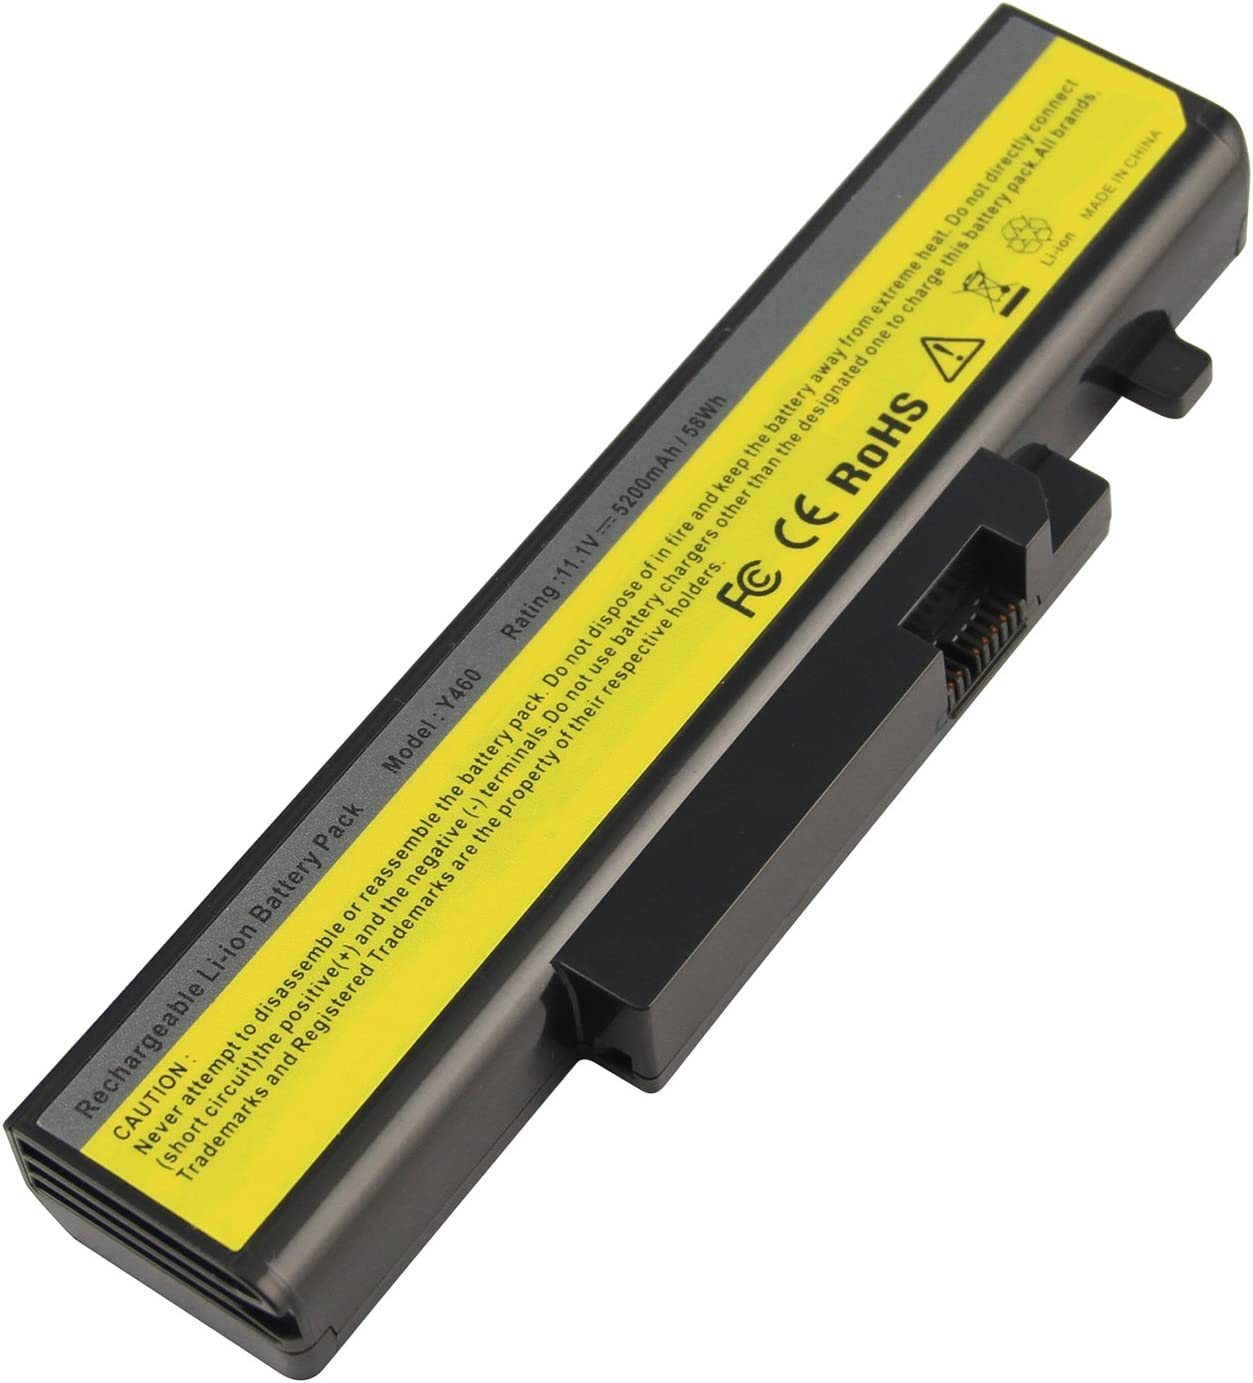 Futurebatt 5200mAh Li-ion Battery for IBM Lenovo Ideapad Y460 Y560 L09S6D16 57Y6440 6 Cell